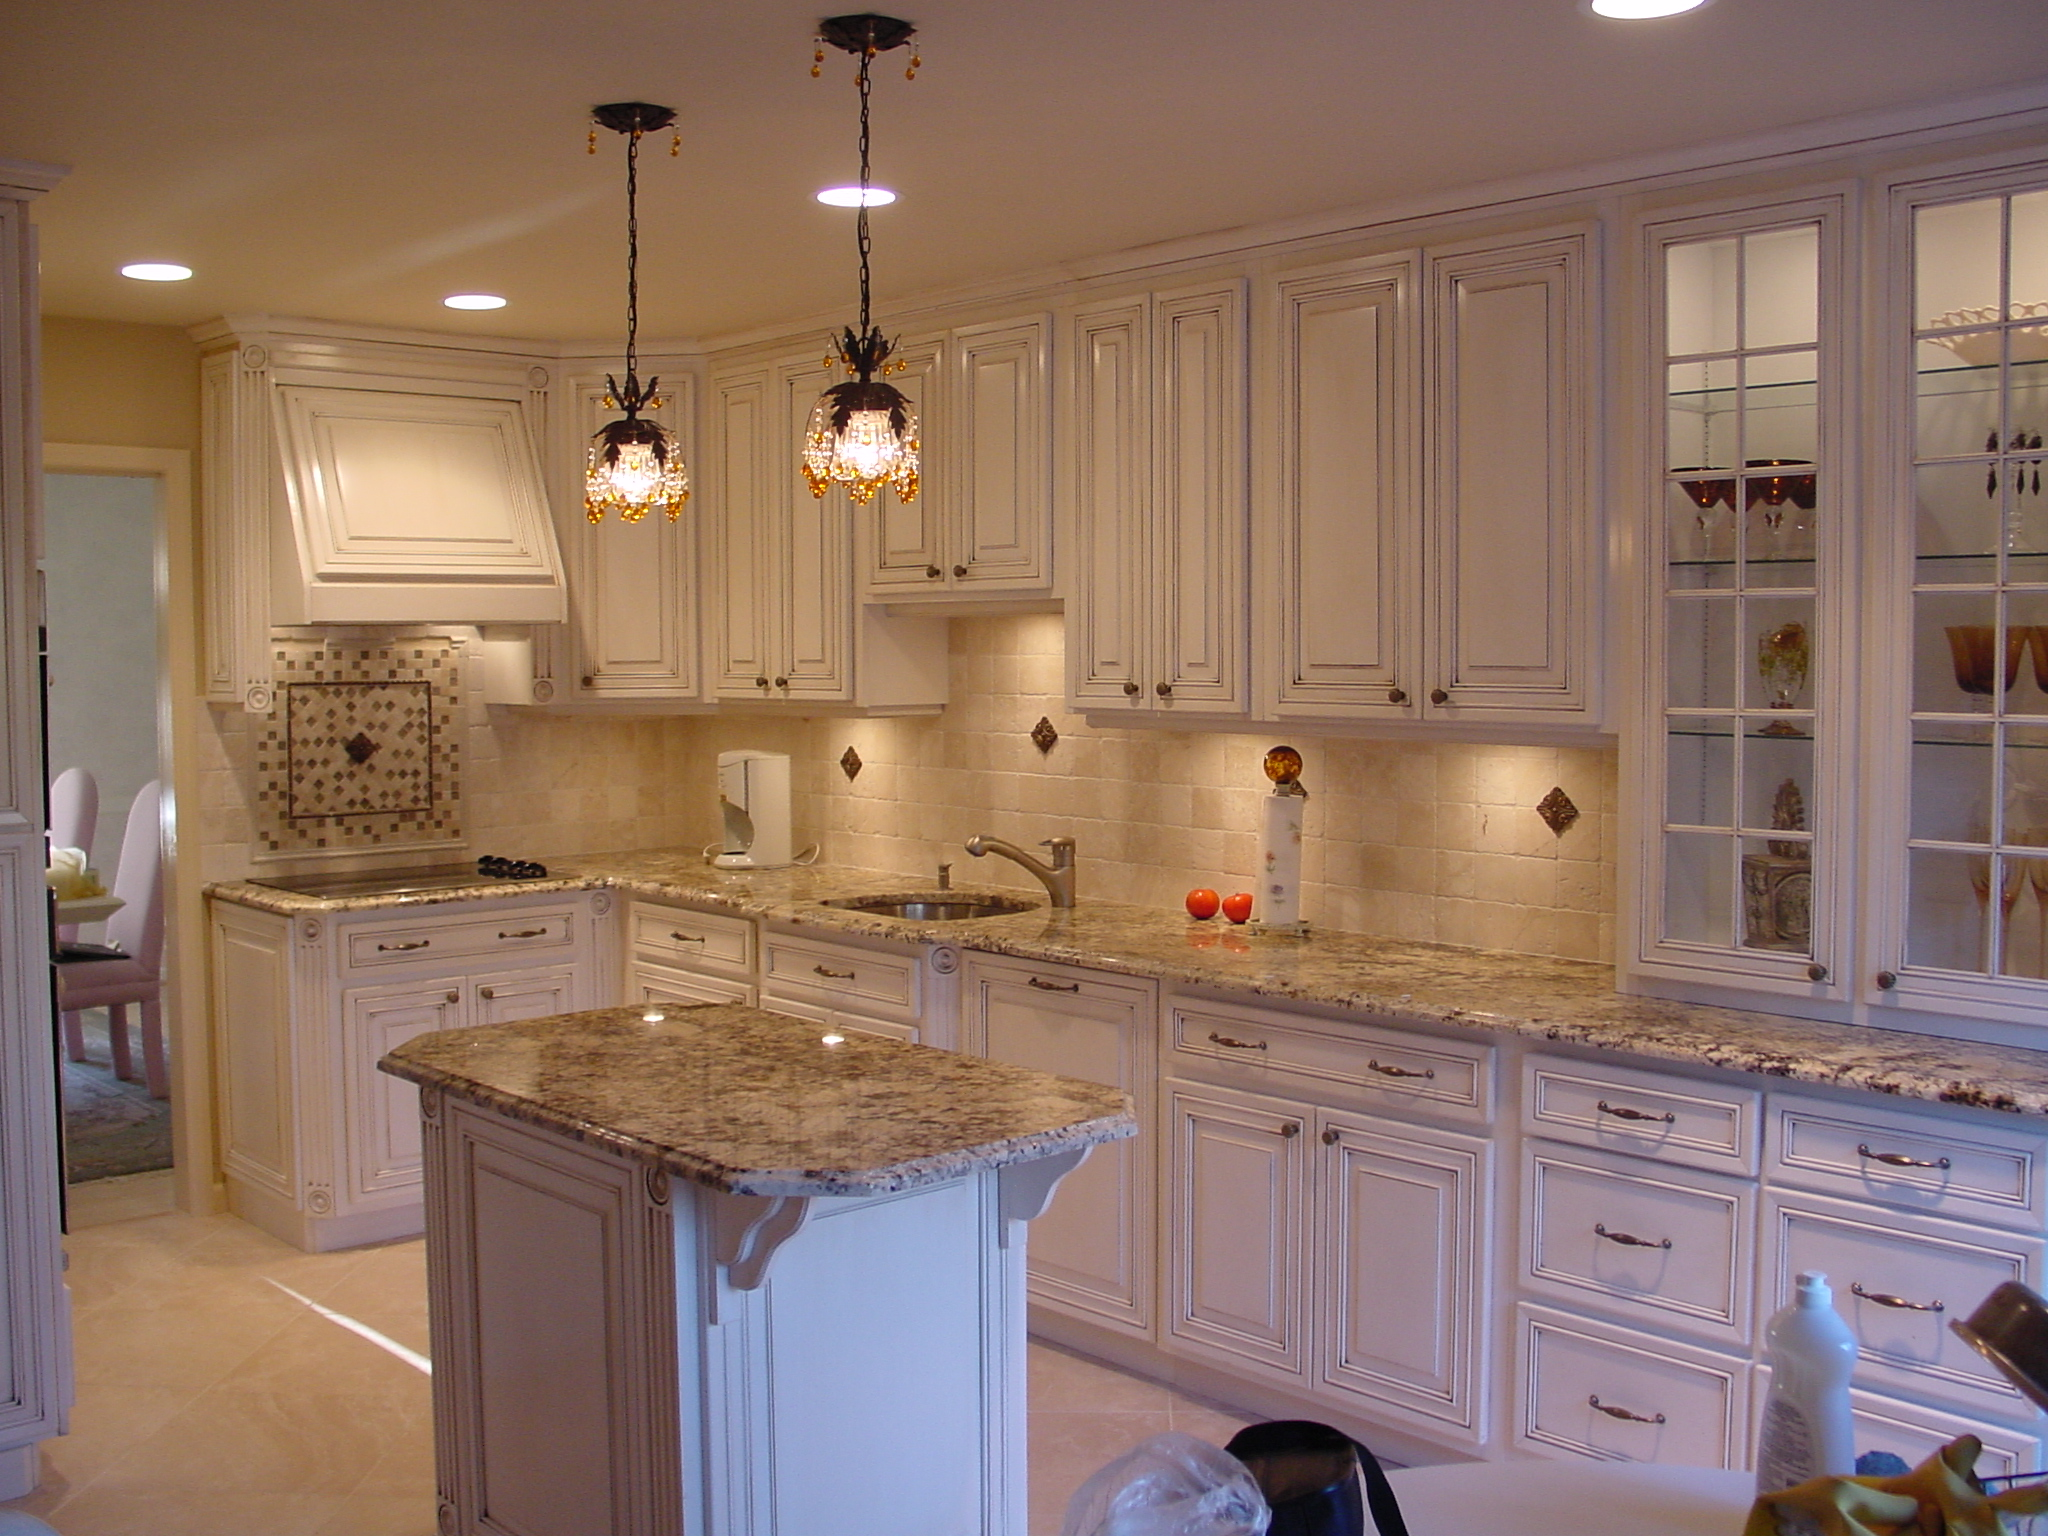 The white kitchen above shows our custom hood and a custom island in Cherry Hill, NJ with kitchen storage solutions for easy meal preparation.